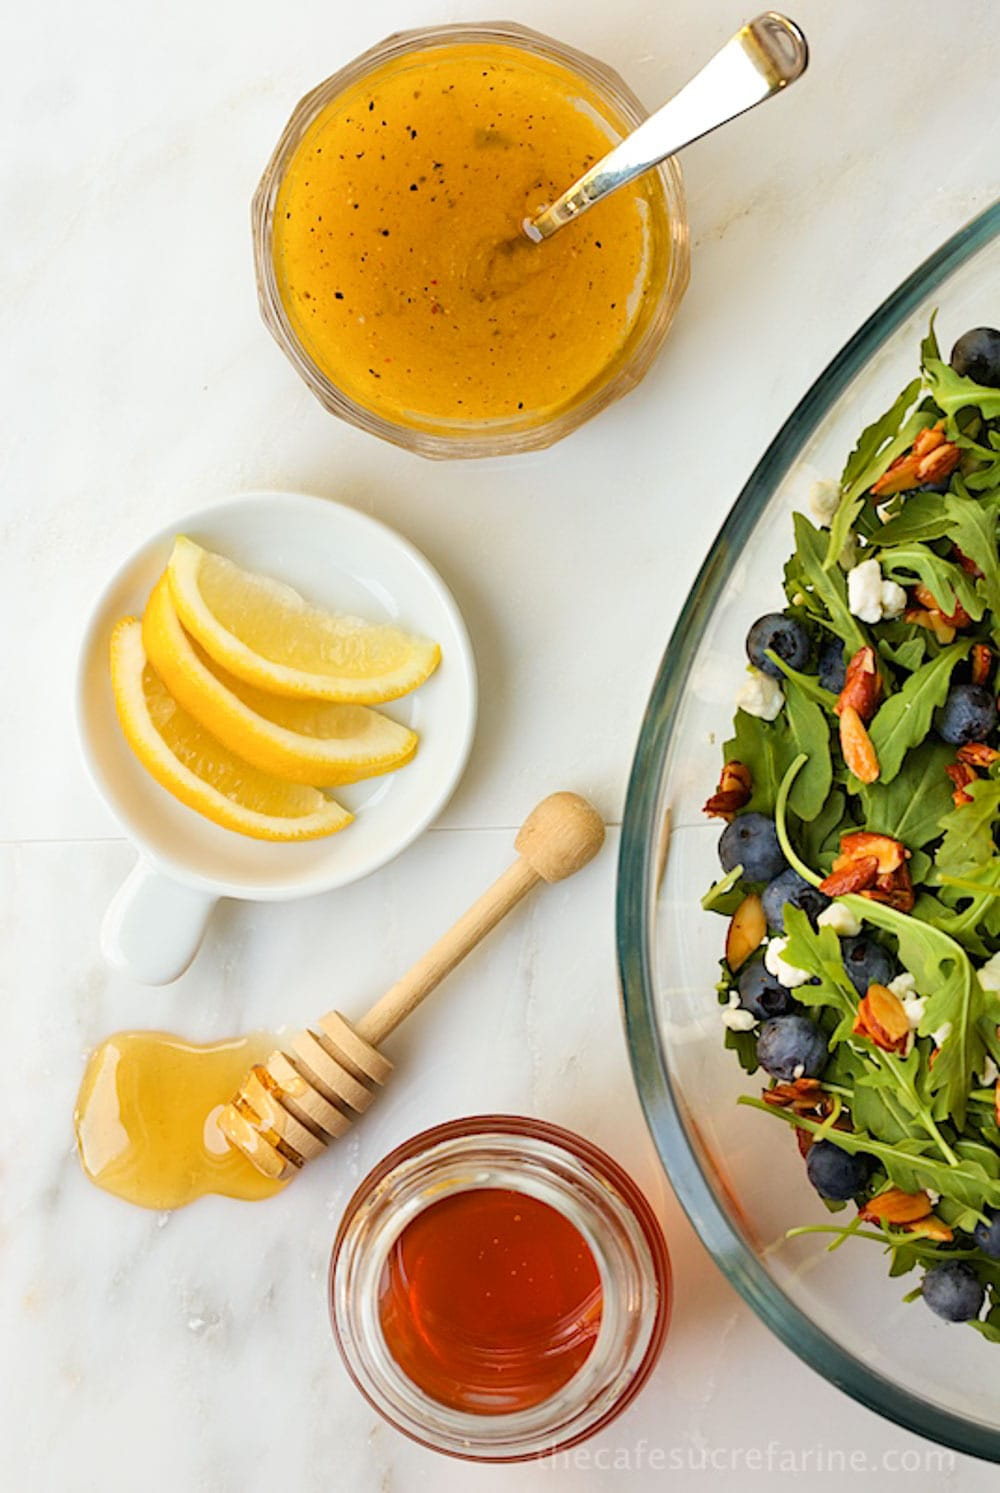 Image from above of the Blueberry Arugula Salad with Honey-Lemon Dressing with bowls of dressing, lemon and honey.